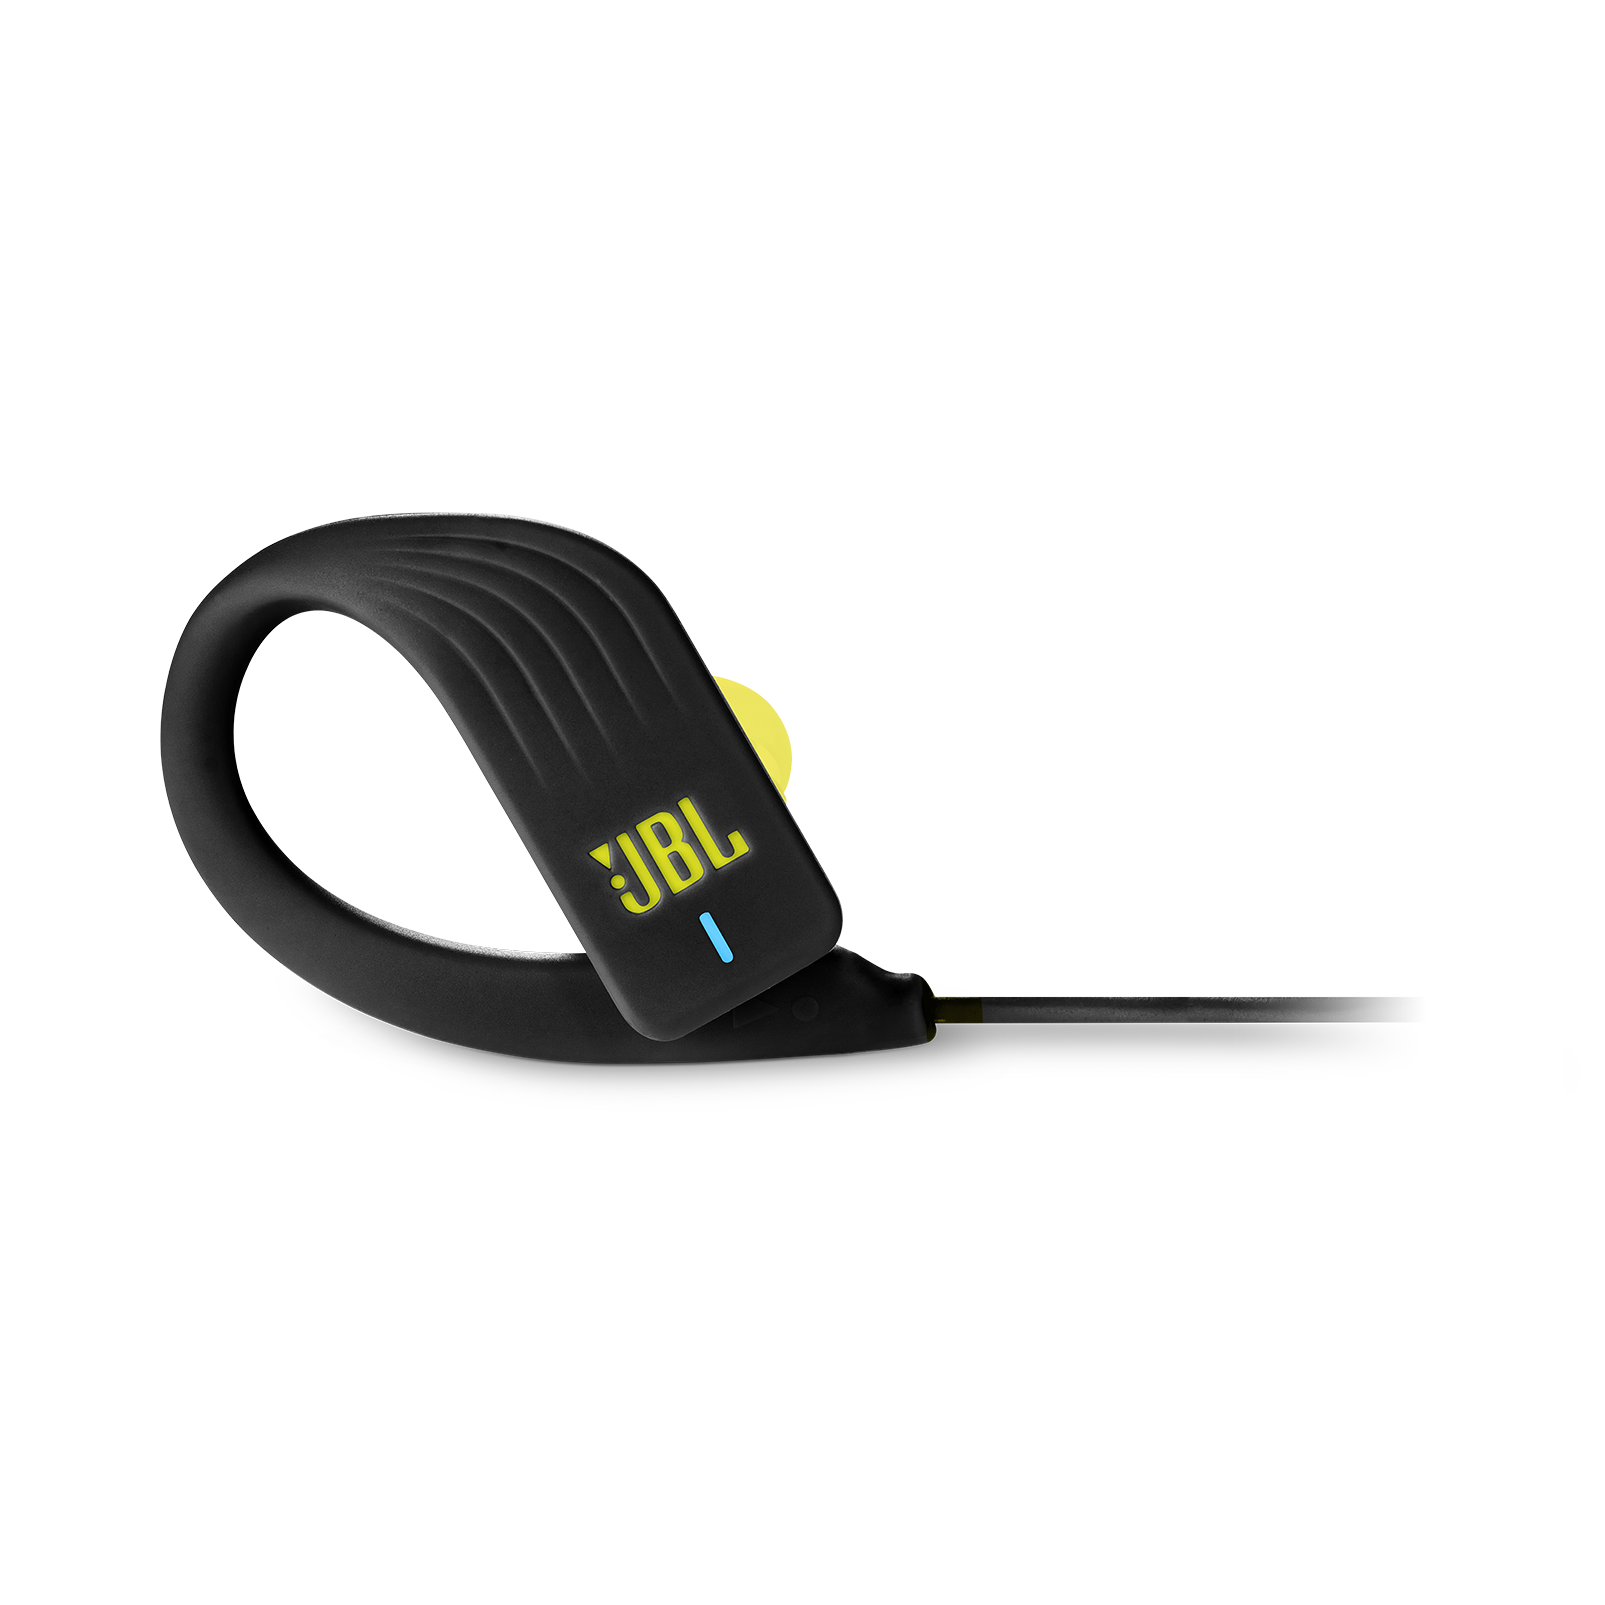 JBL Endurance SPRINT - Yellow - Waterproof Wireless In-Ear Sport Headphones - Detailshot 4